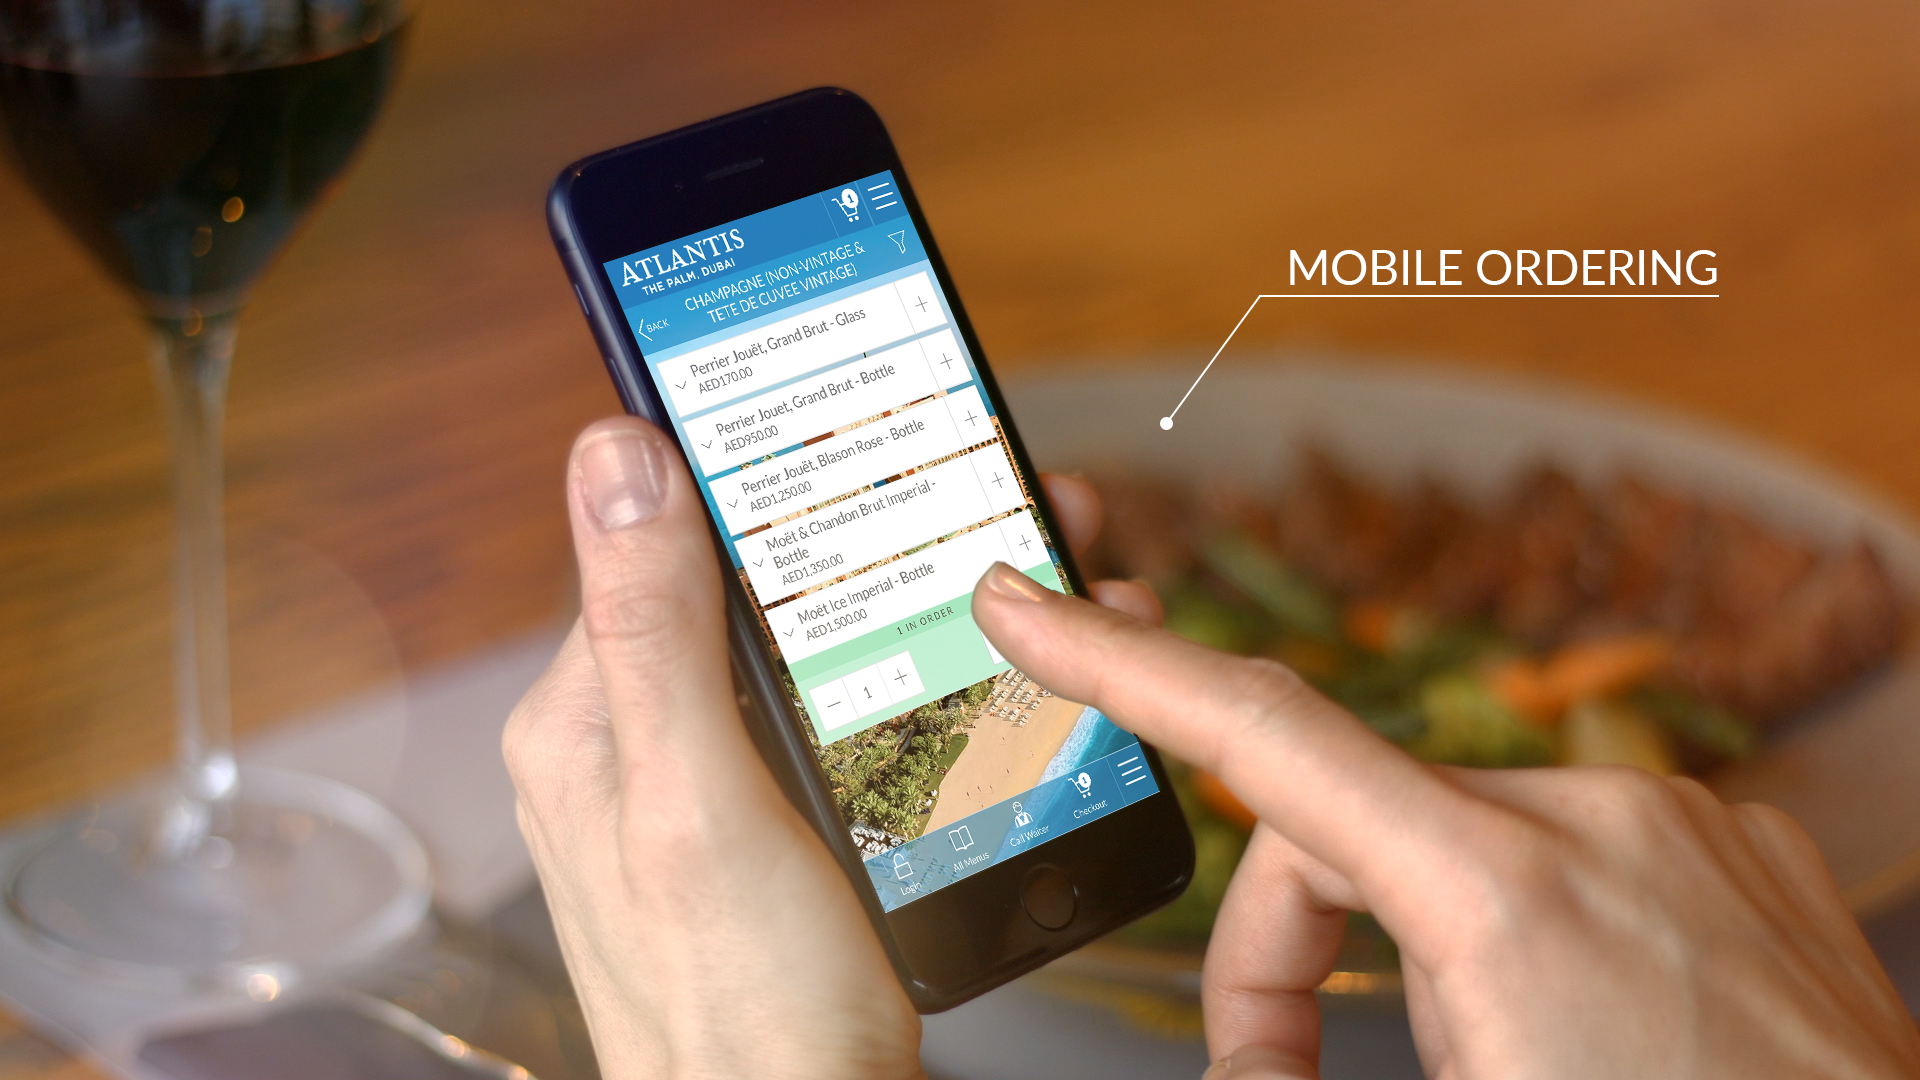 Atlantis Hotel web based Mobile Ordering